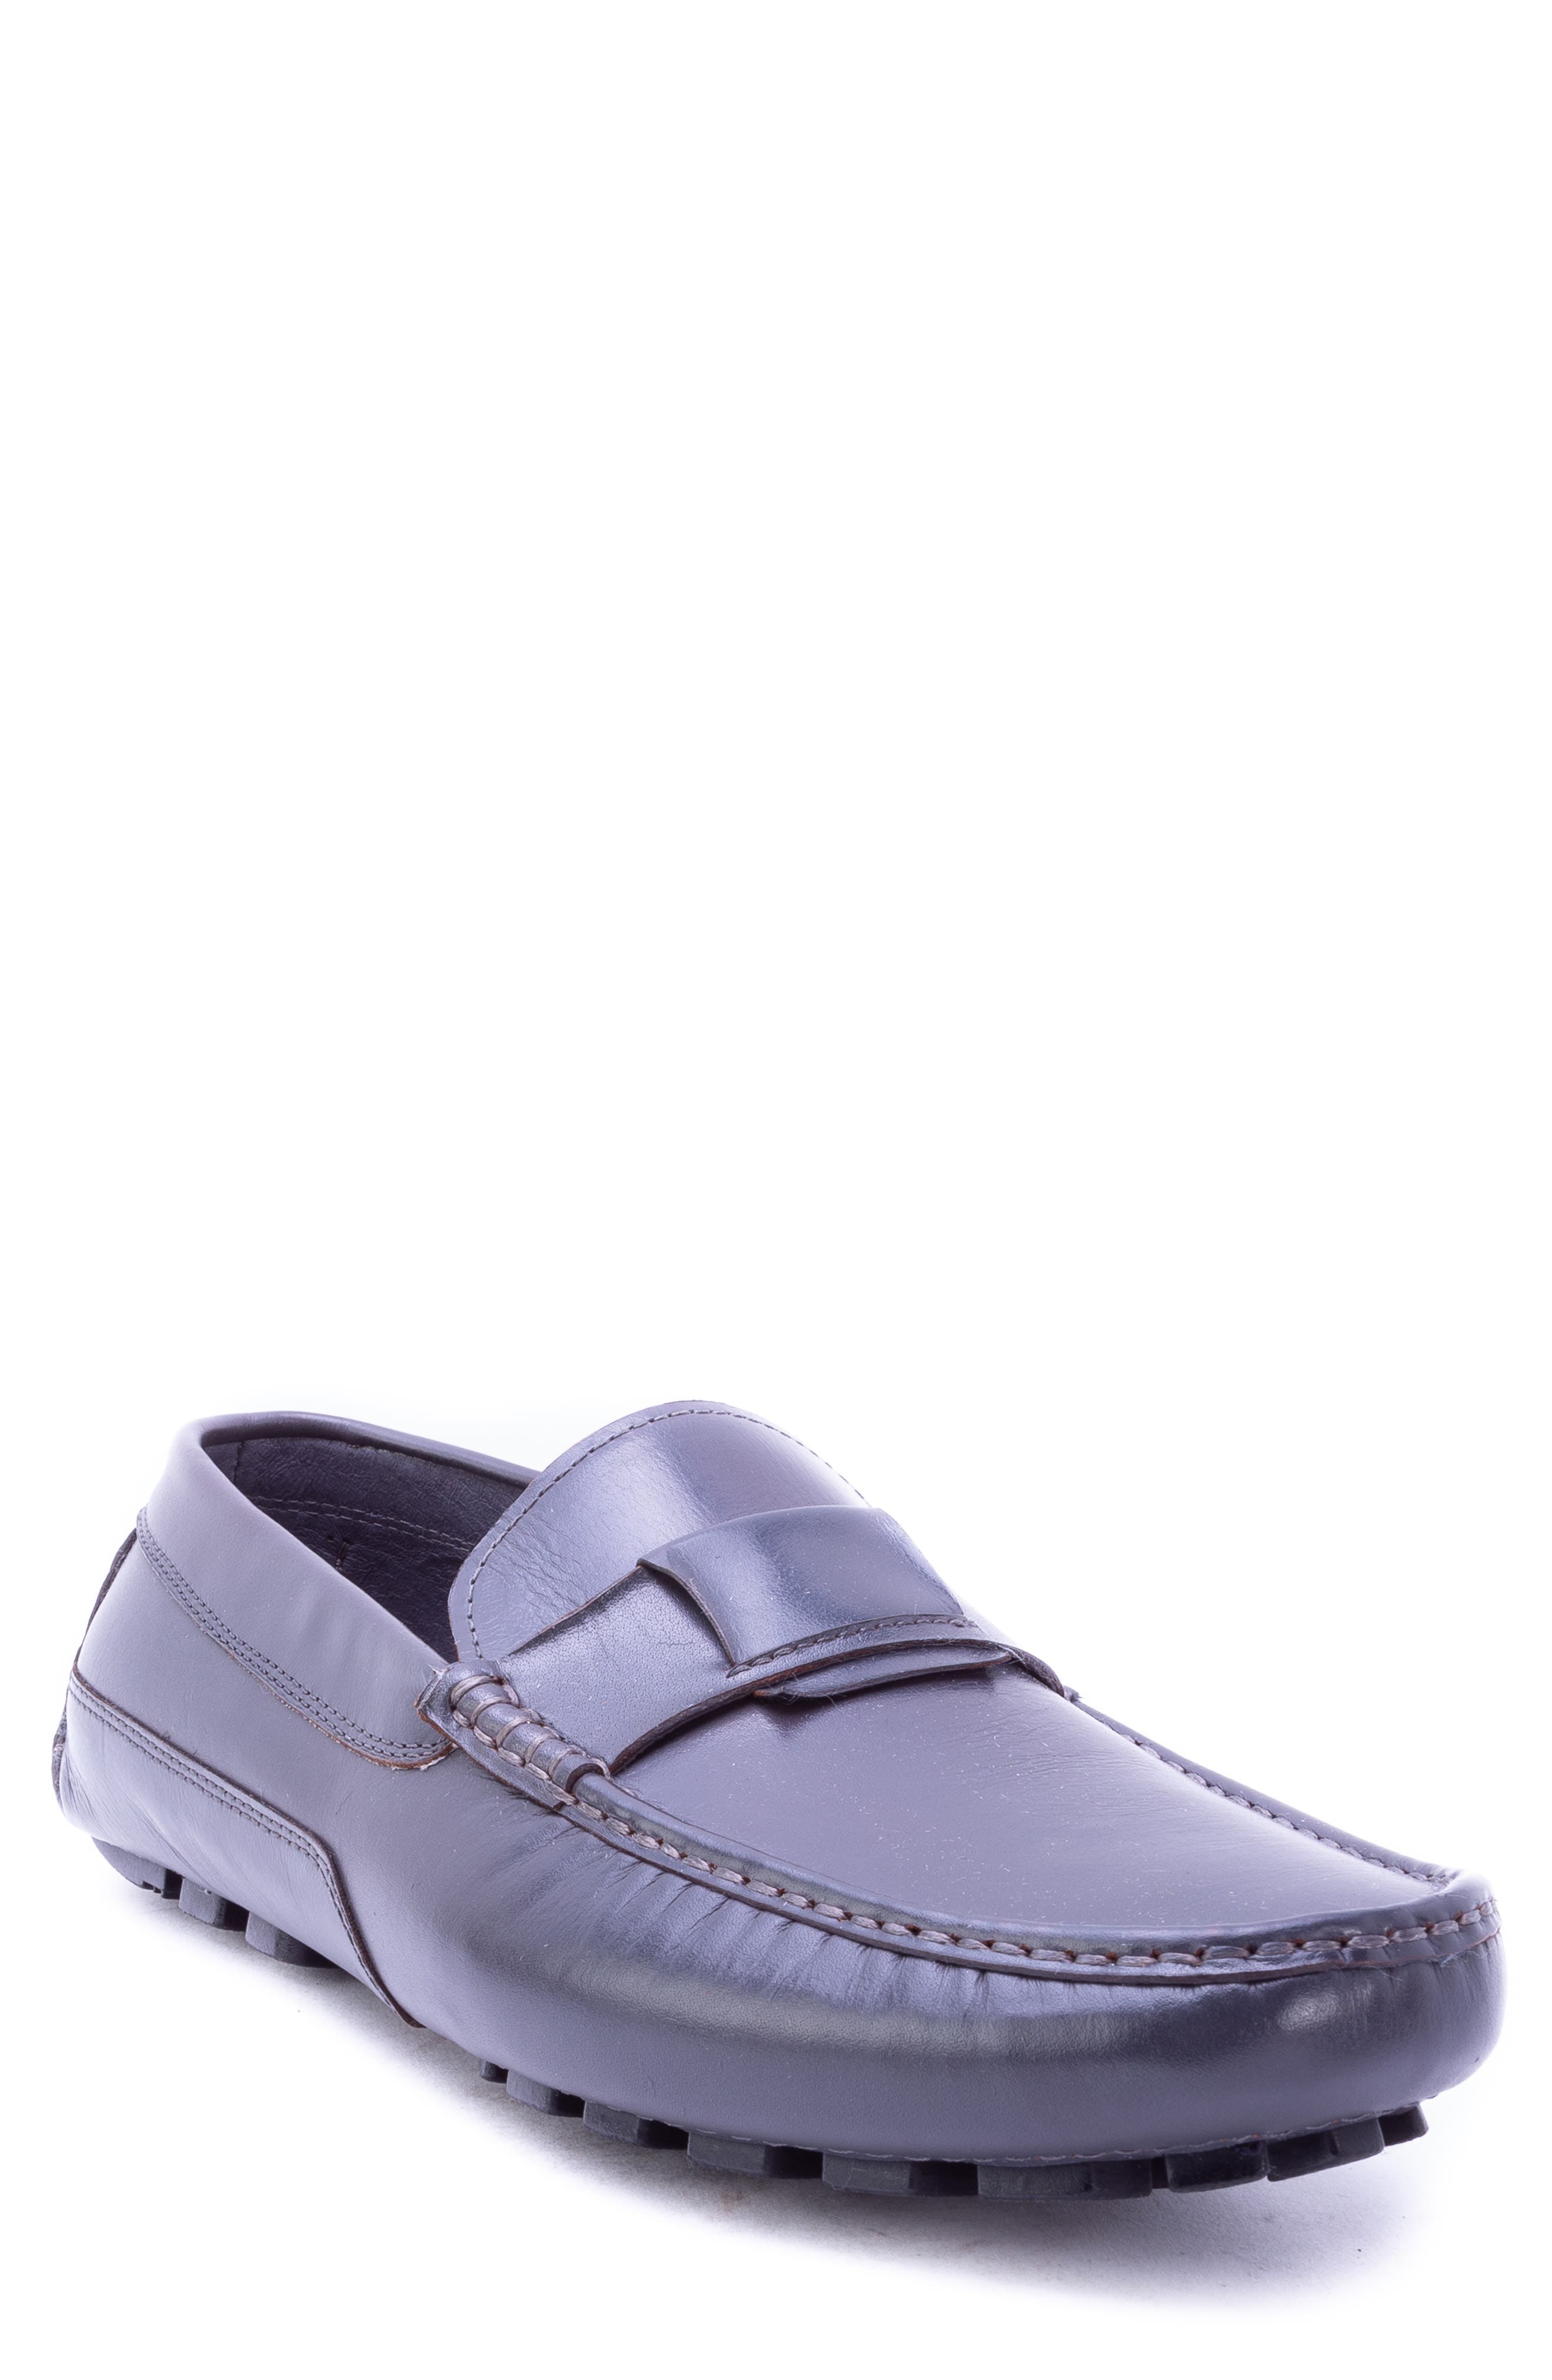 Newton Driving Moccasin,                         Main,                         color, GREY LEATHER